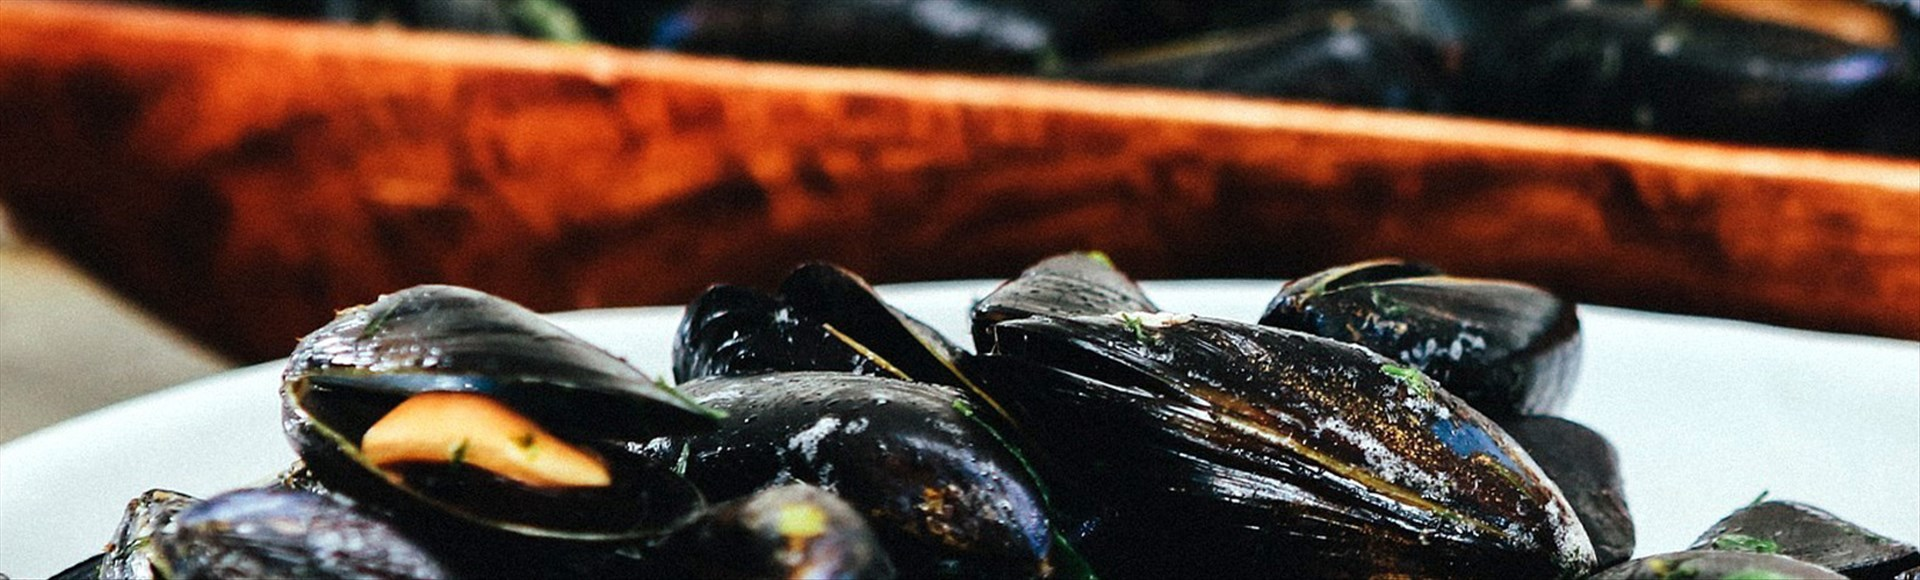 steamed-mussels-with-ouzo-and-fresh-tomatoes - Alargo Private Chef Service in Crete | Christos & Michael